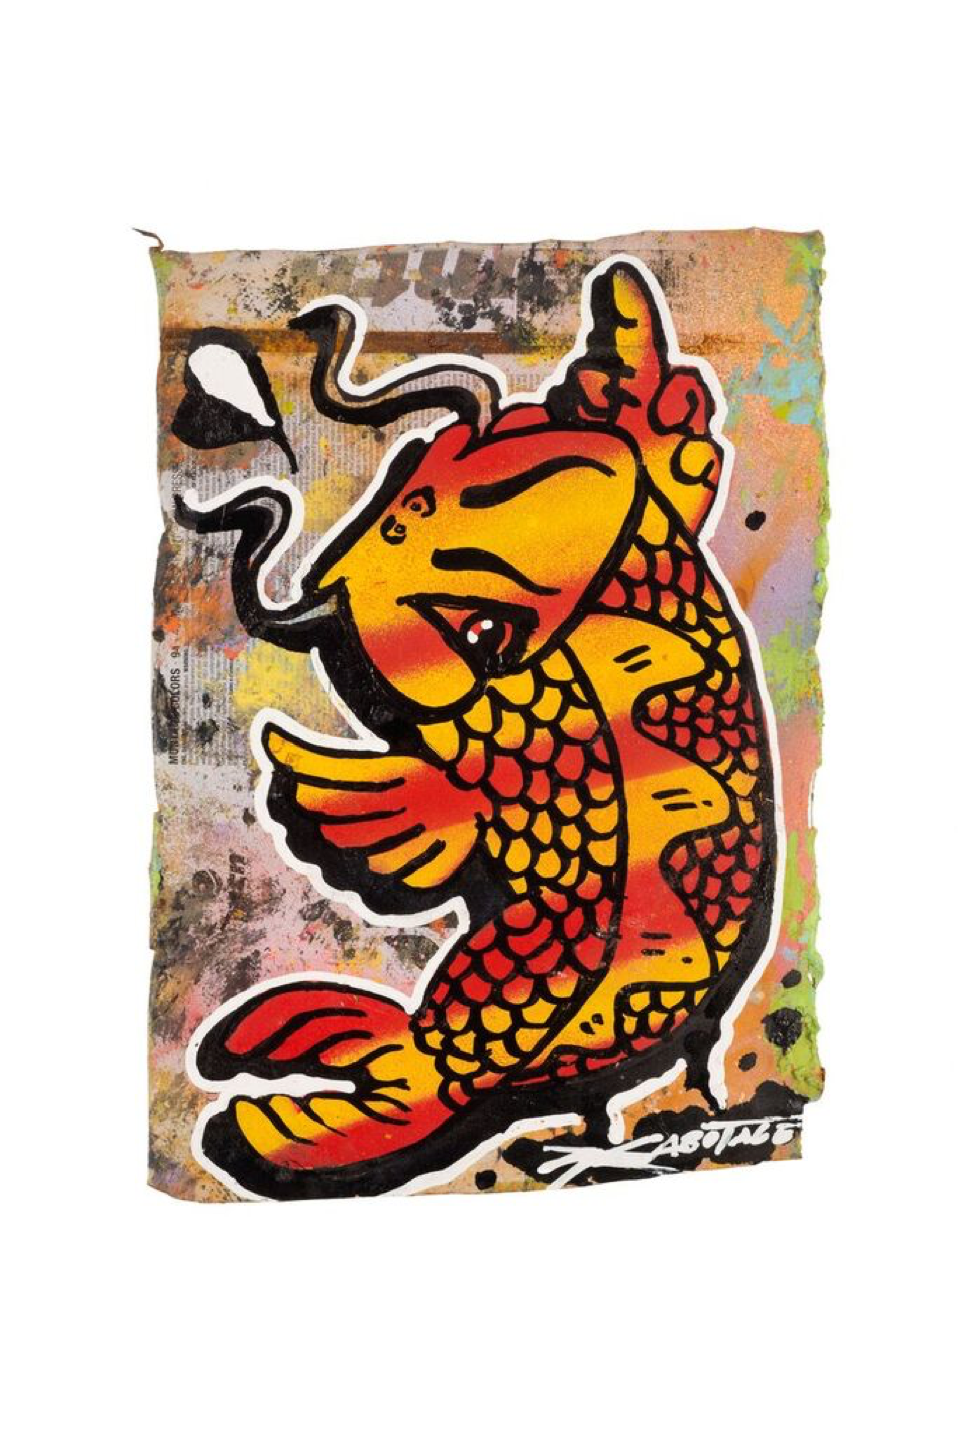 """Flipping Koi Flame""  Mini Can Can Collection Spray paint and markers on CAN-Vas 15 x 21 cm 2016"